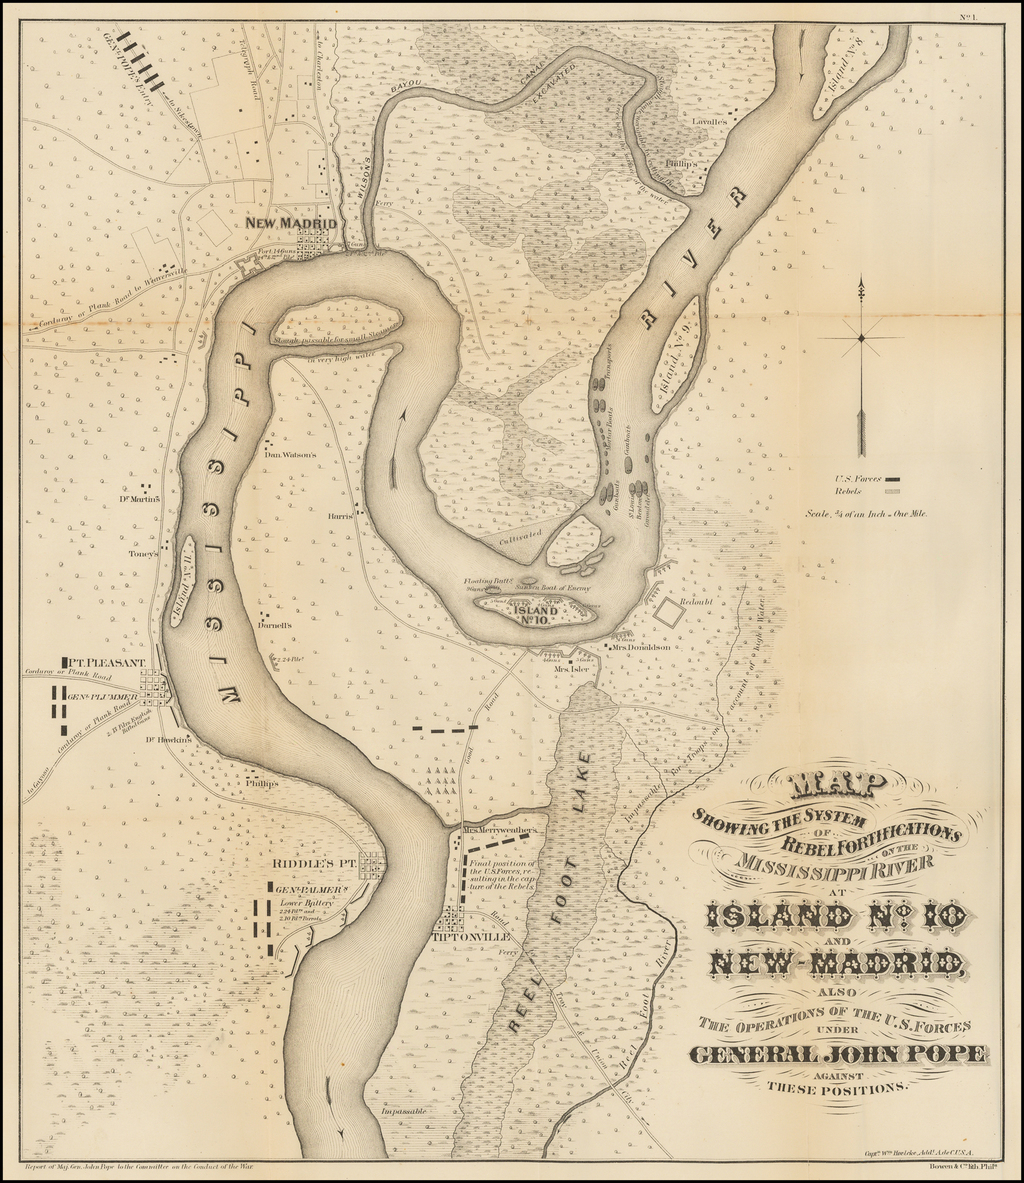 Map Showing the System of Rebel Fortifications on the Mississippi River at Island No. 10 and New Madrid also the Operations of the U.S. Forces Under General Pope Against These Positions By United States War Dept.